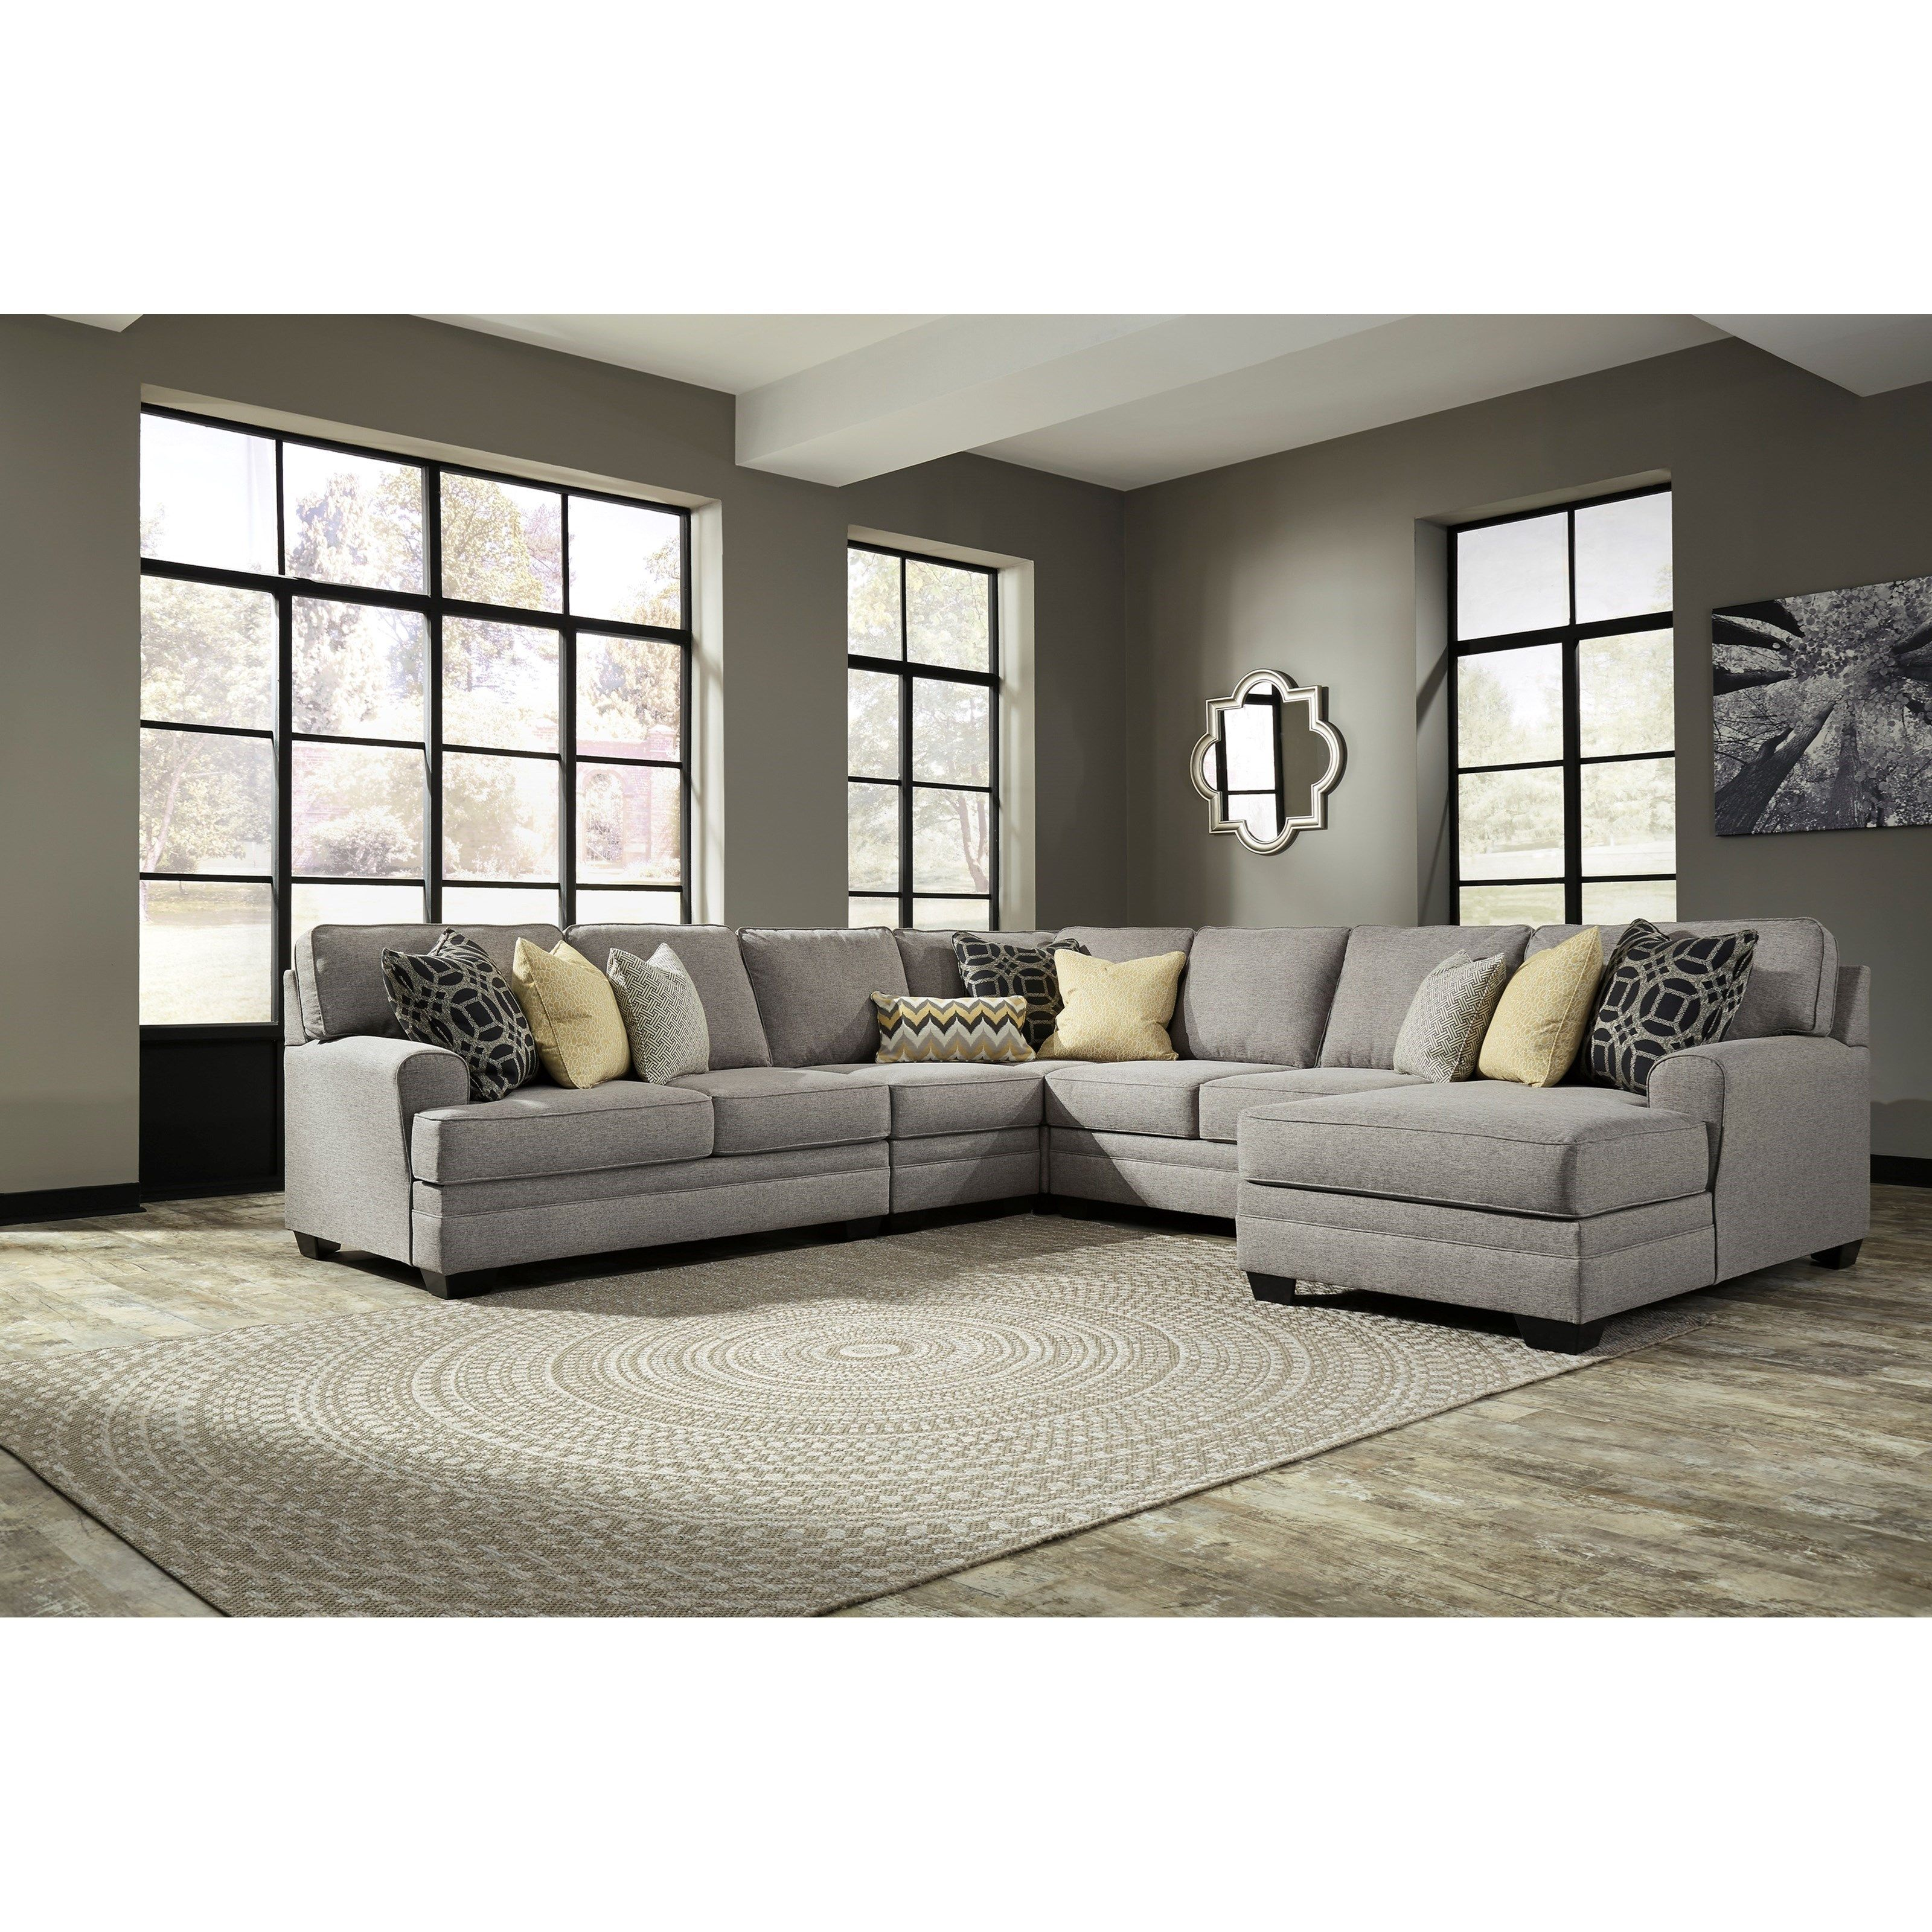 Cresson 5 Piece Sectional With Chaise By Benchcraft Living Room